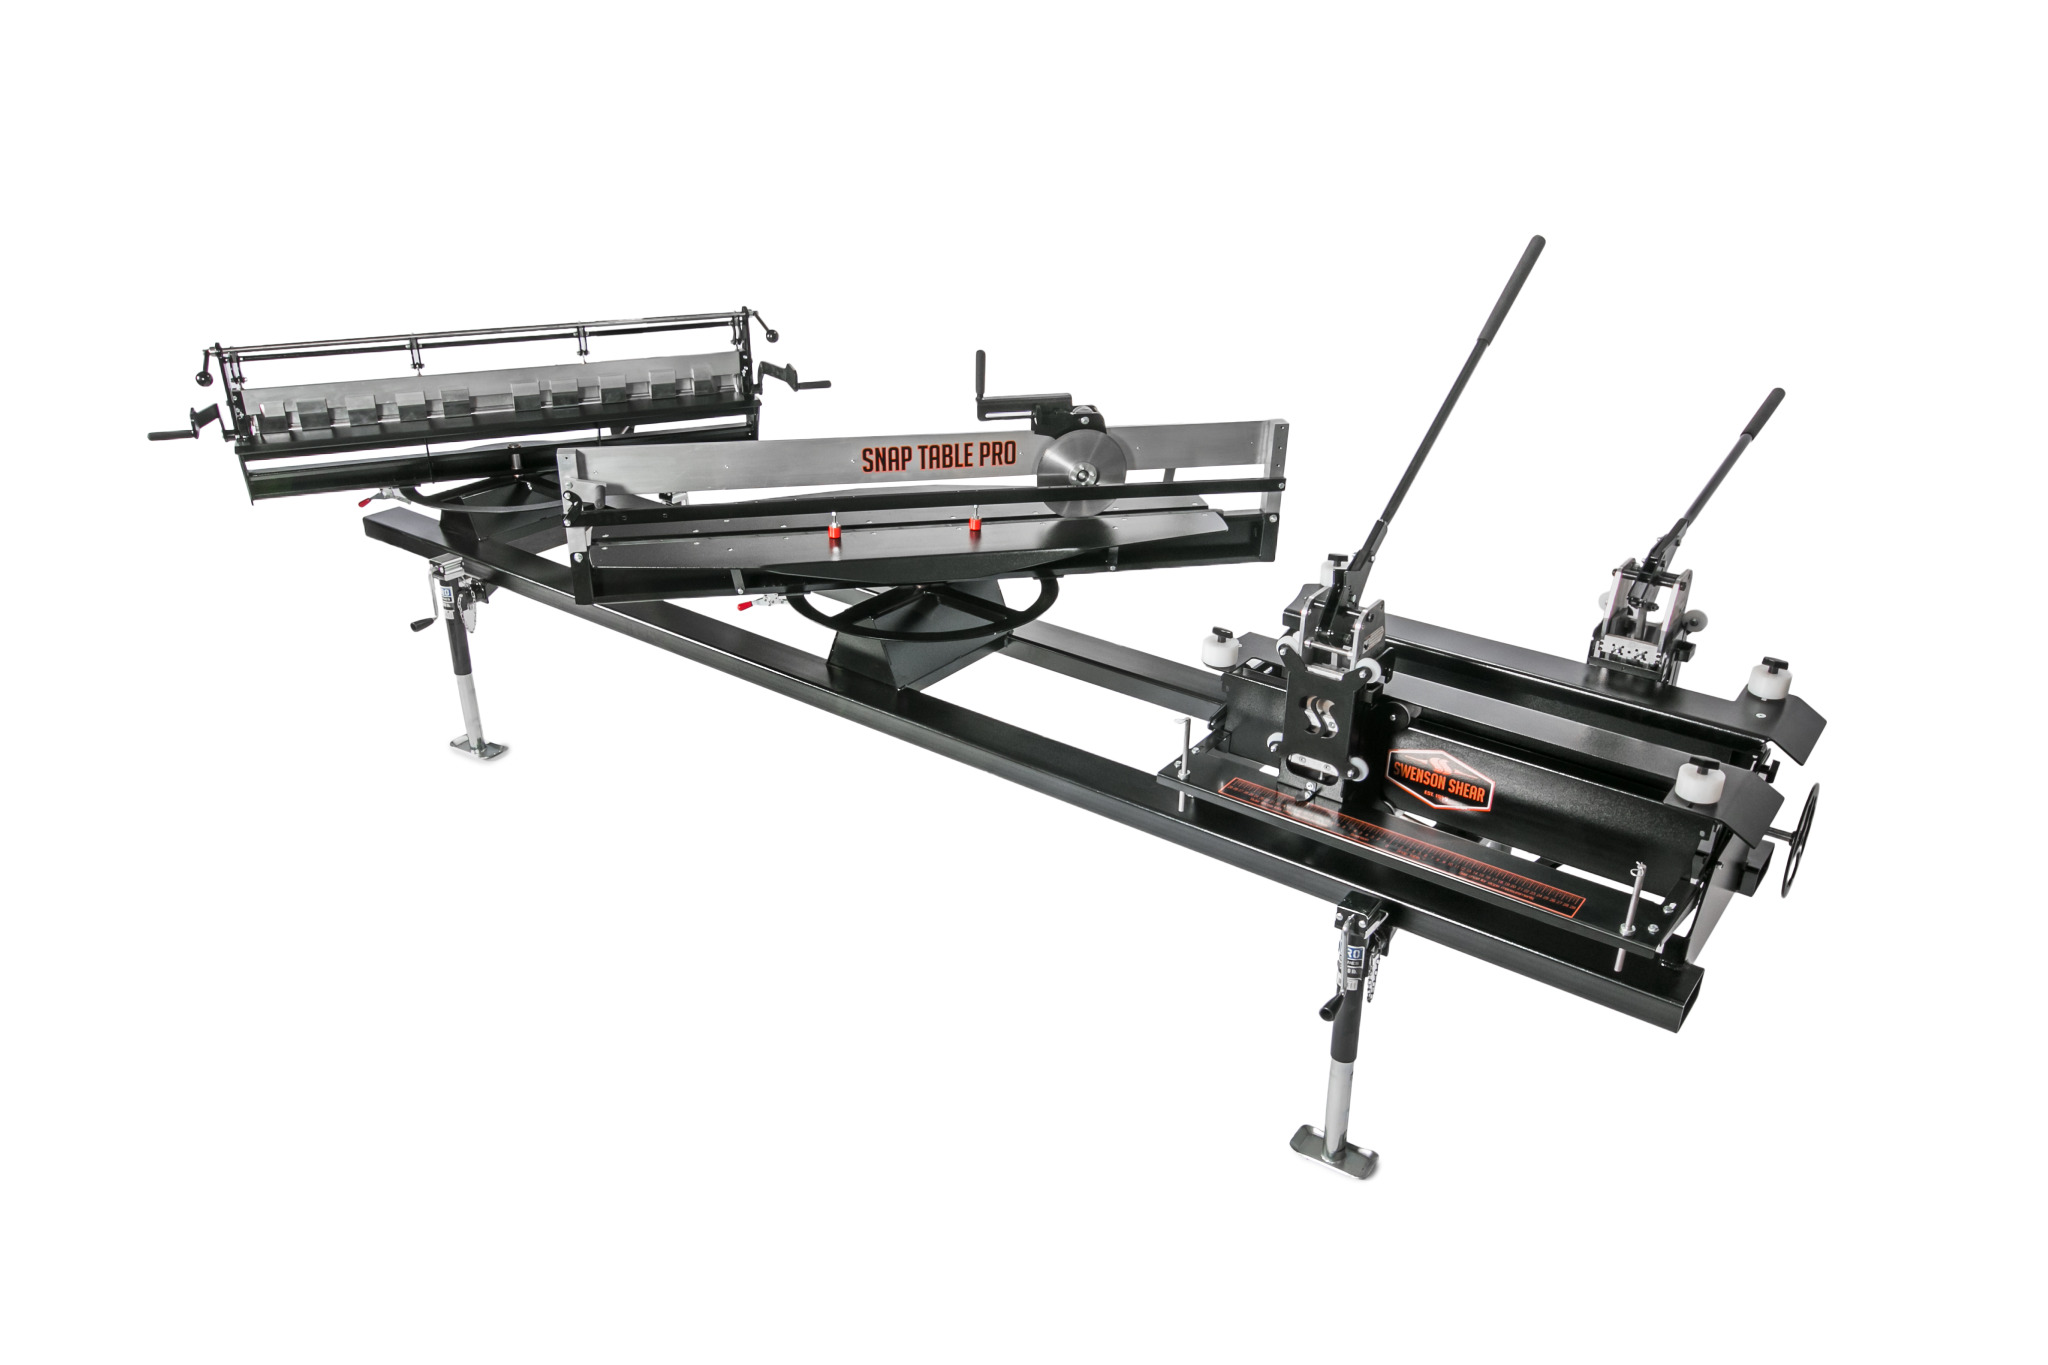 The new SnapTable PRO from Swenson Shear, Ceres, Calif., adjusts to accommodate panels between 12 and 24 inches.